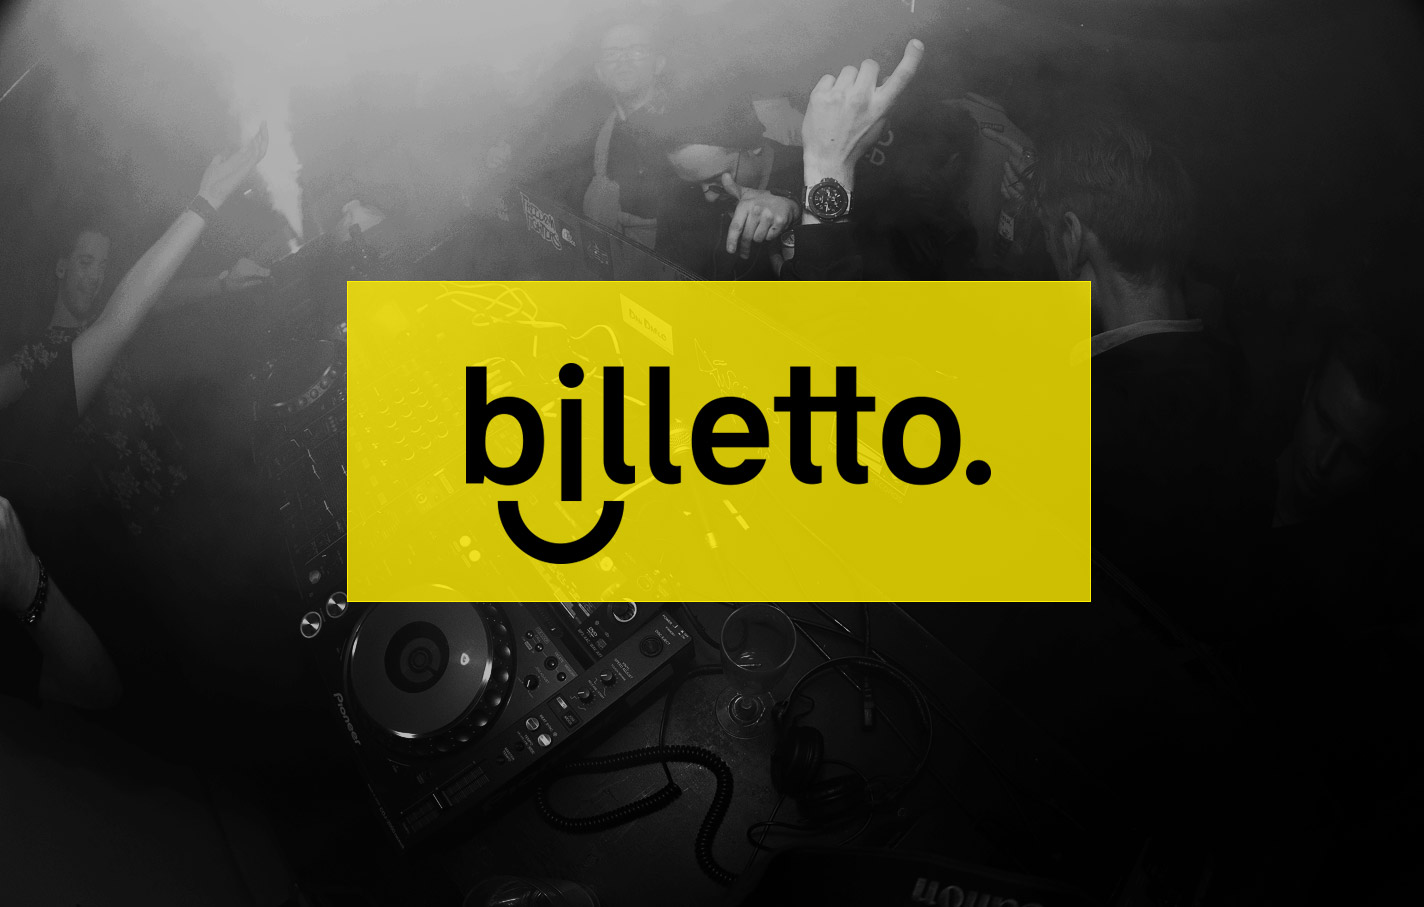 Get tickets at billetto